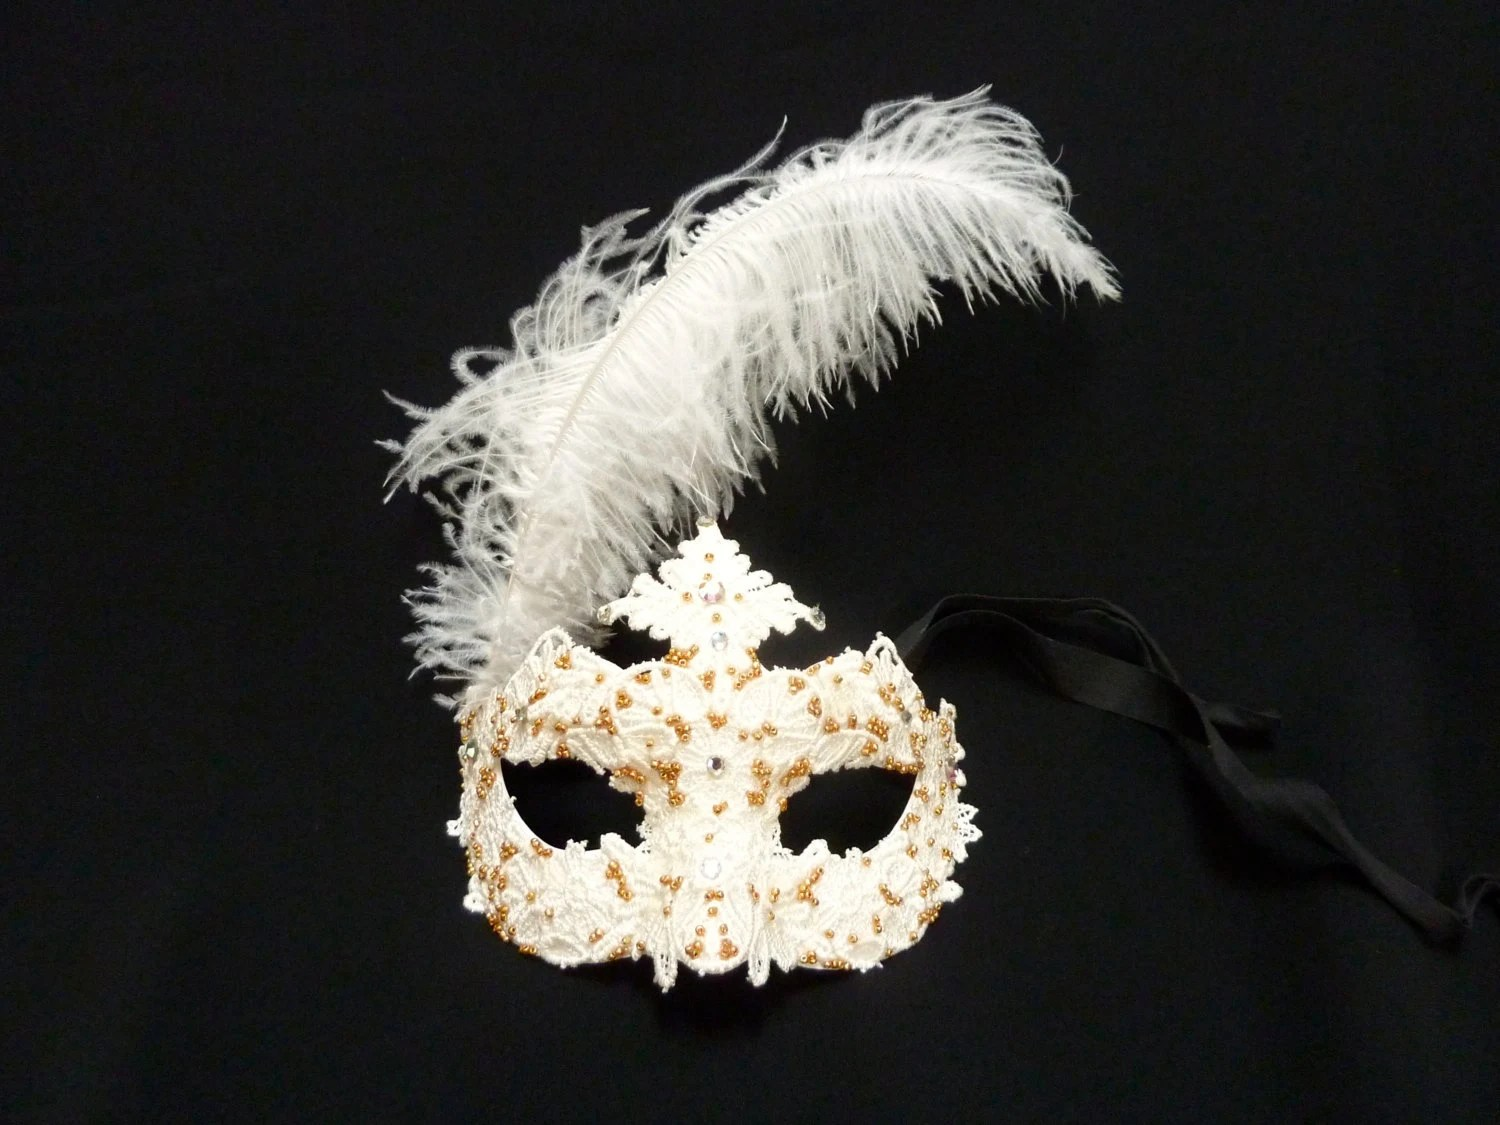 White and Gold Venetian Mask with Brocade Lace and Beads - Mardi Gras Mask - OOAK - TheSeamstressBrunch